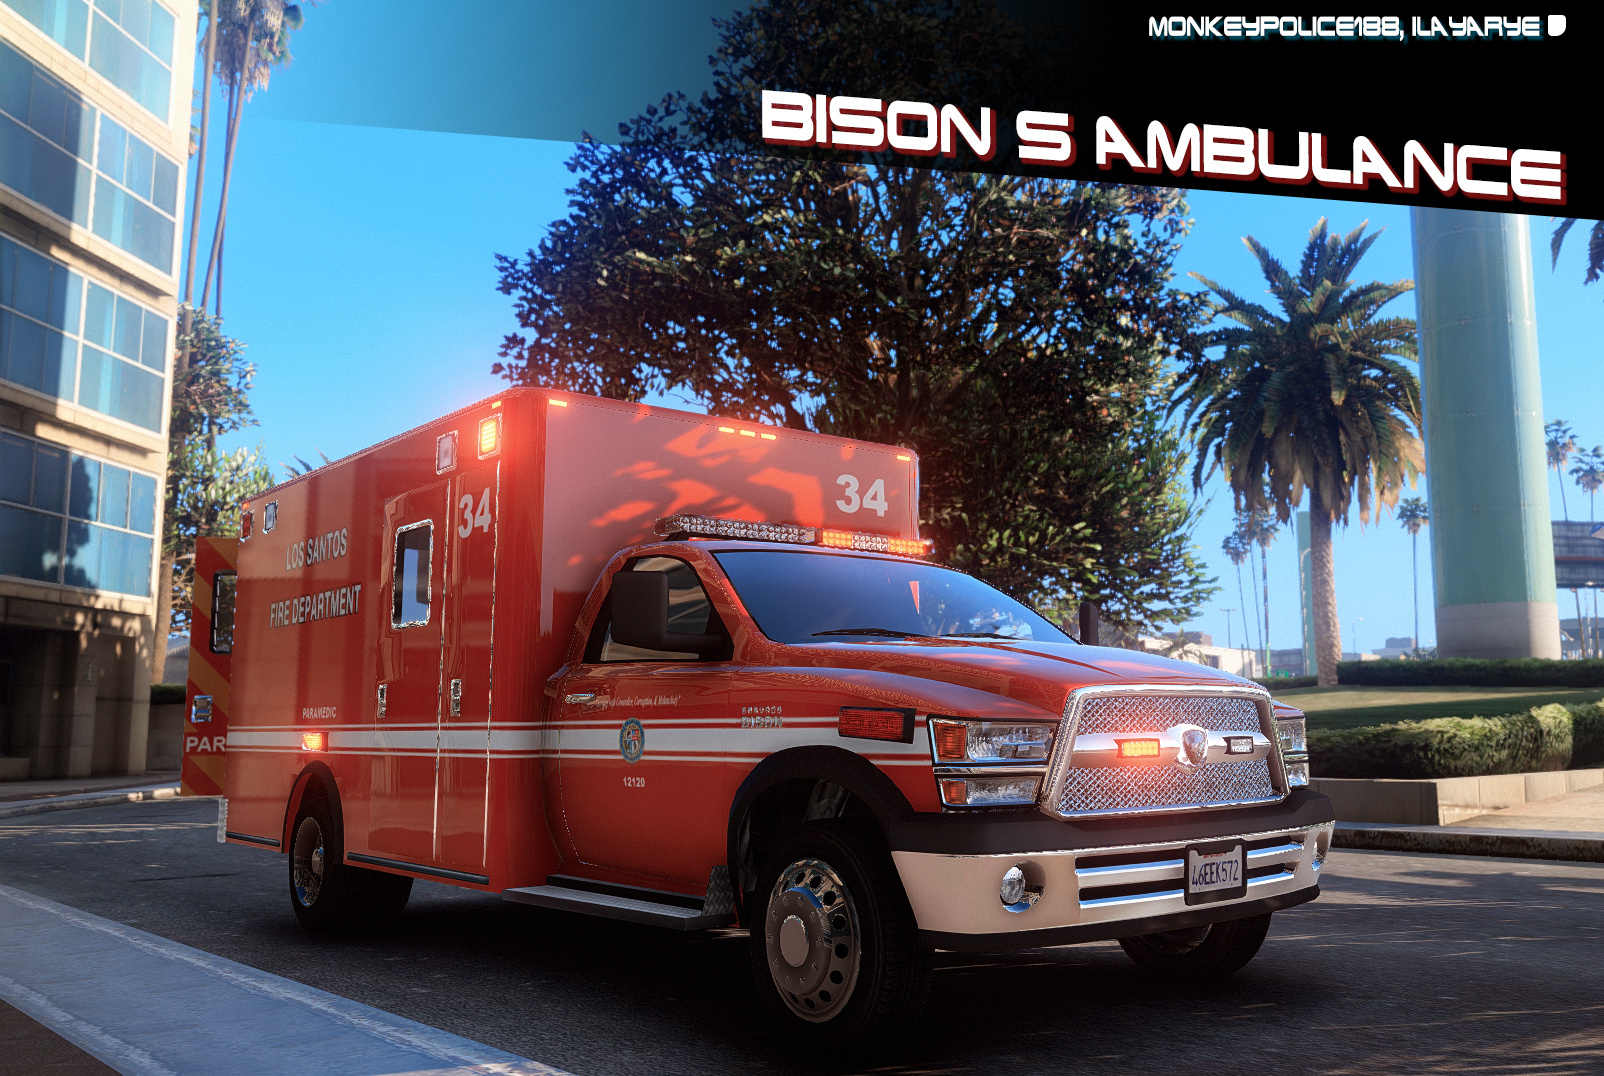 38cf22-Bison_Ambulance.jpg